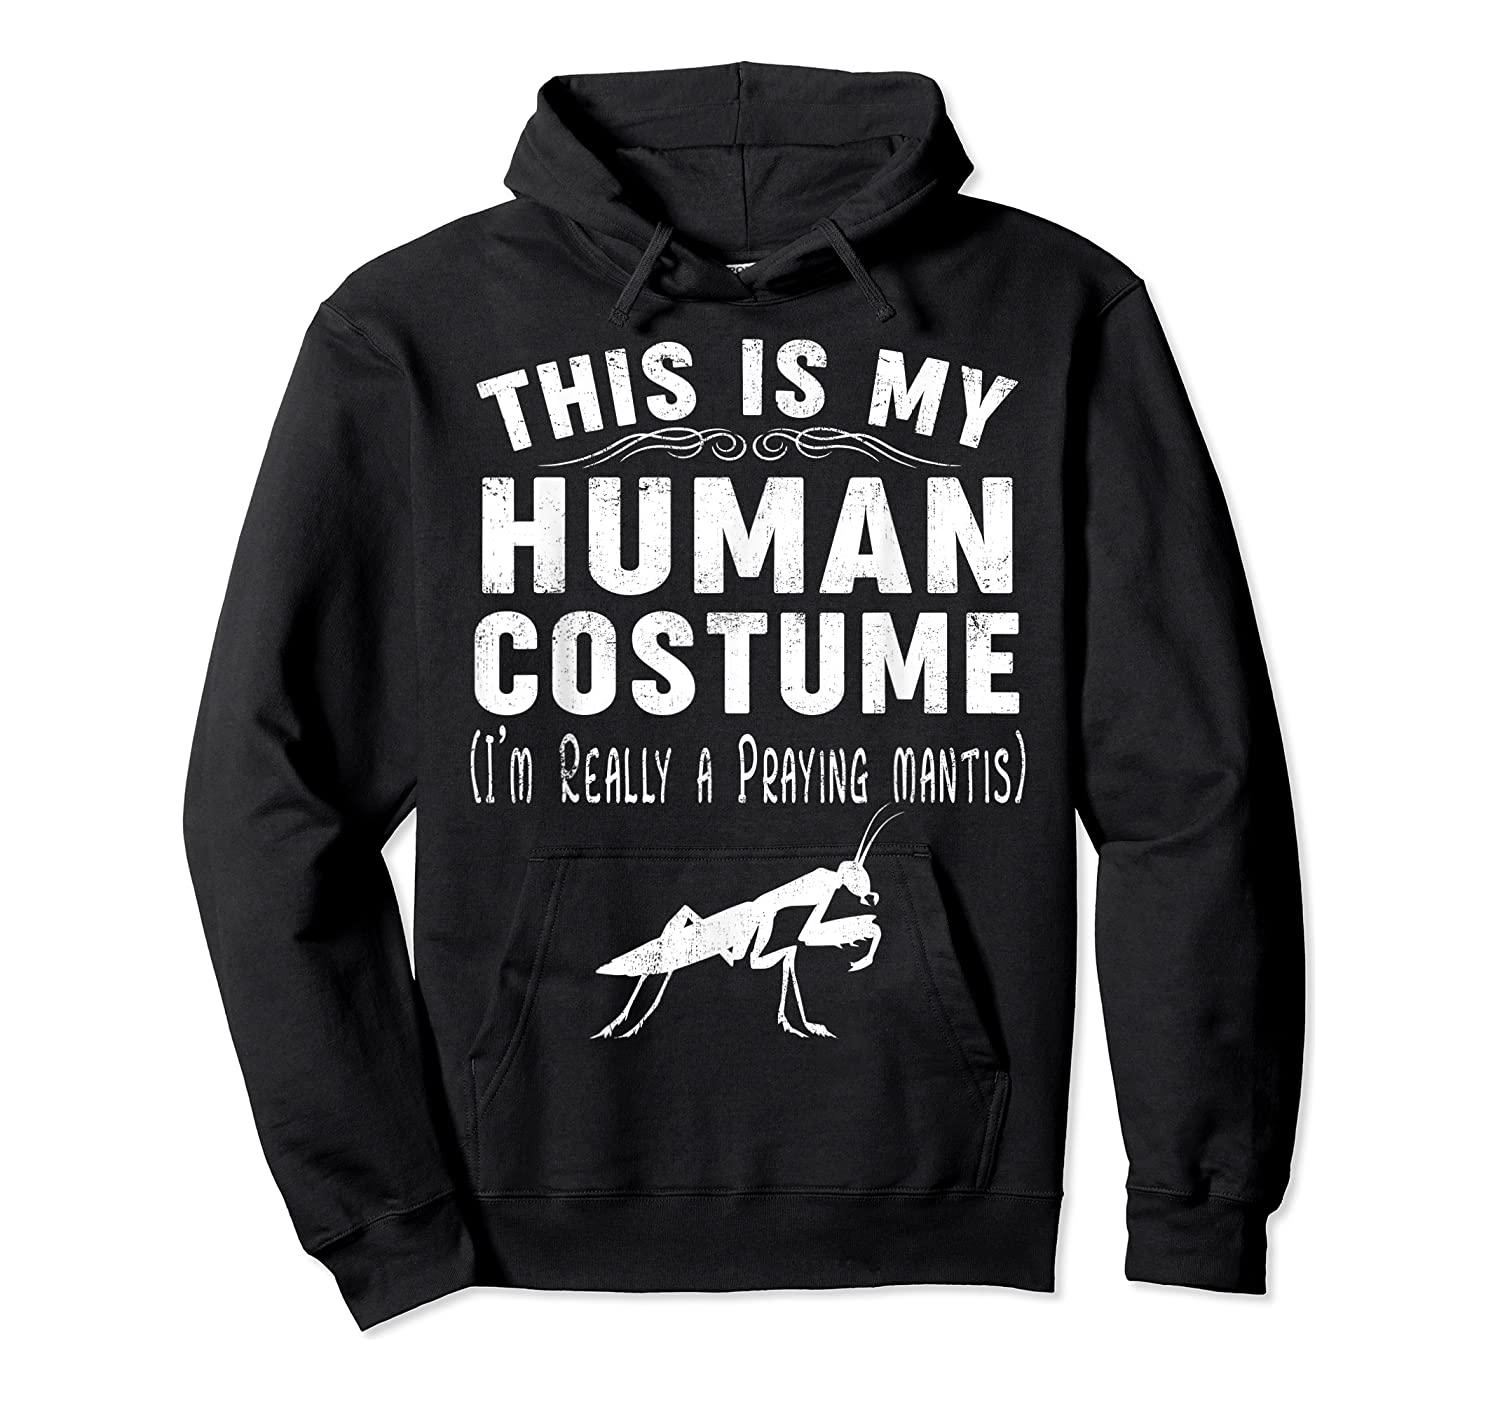 This Is My Halloween Costume I'm Realy Praying Mantis Shirts Unisex Pullover Hoodie